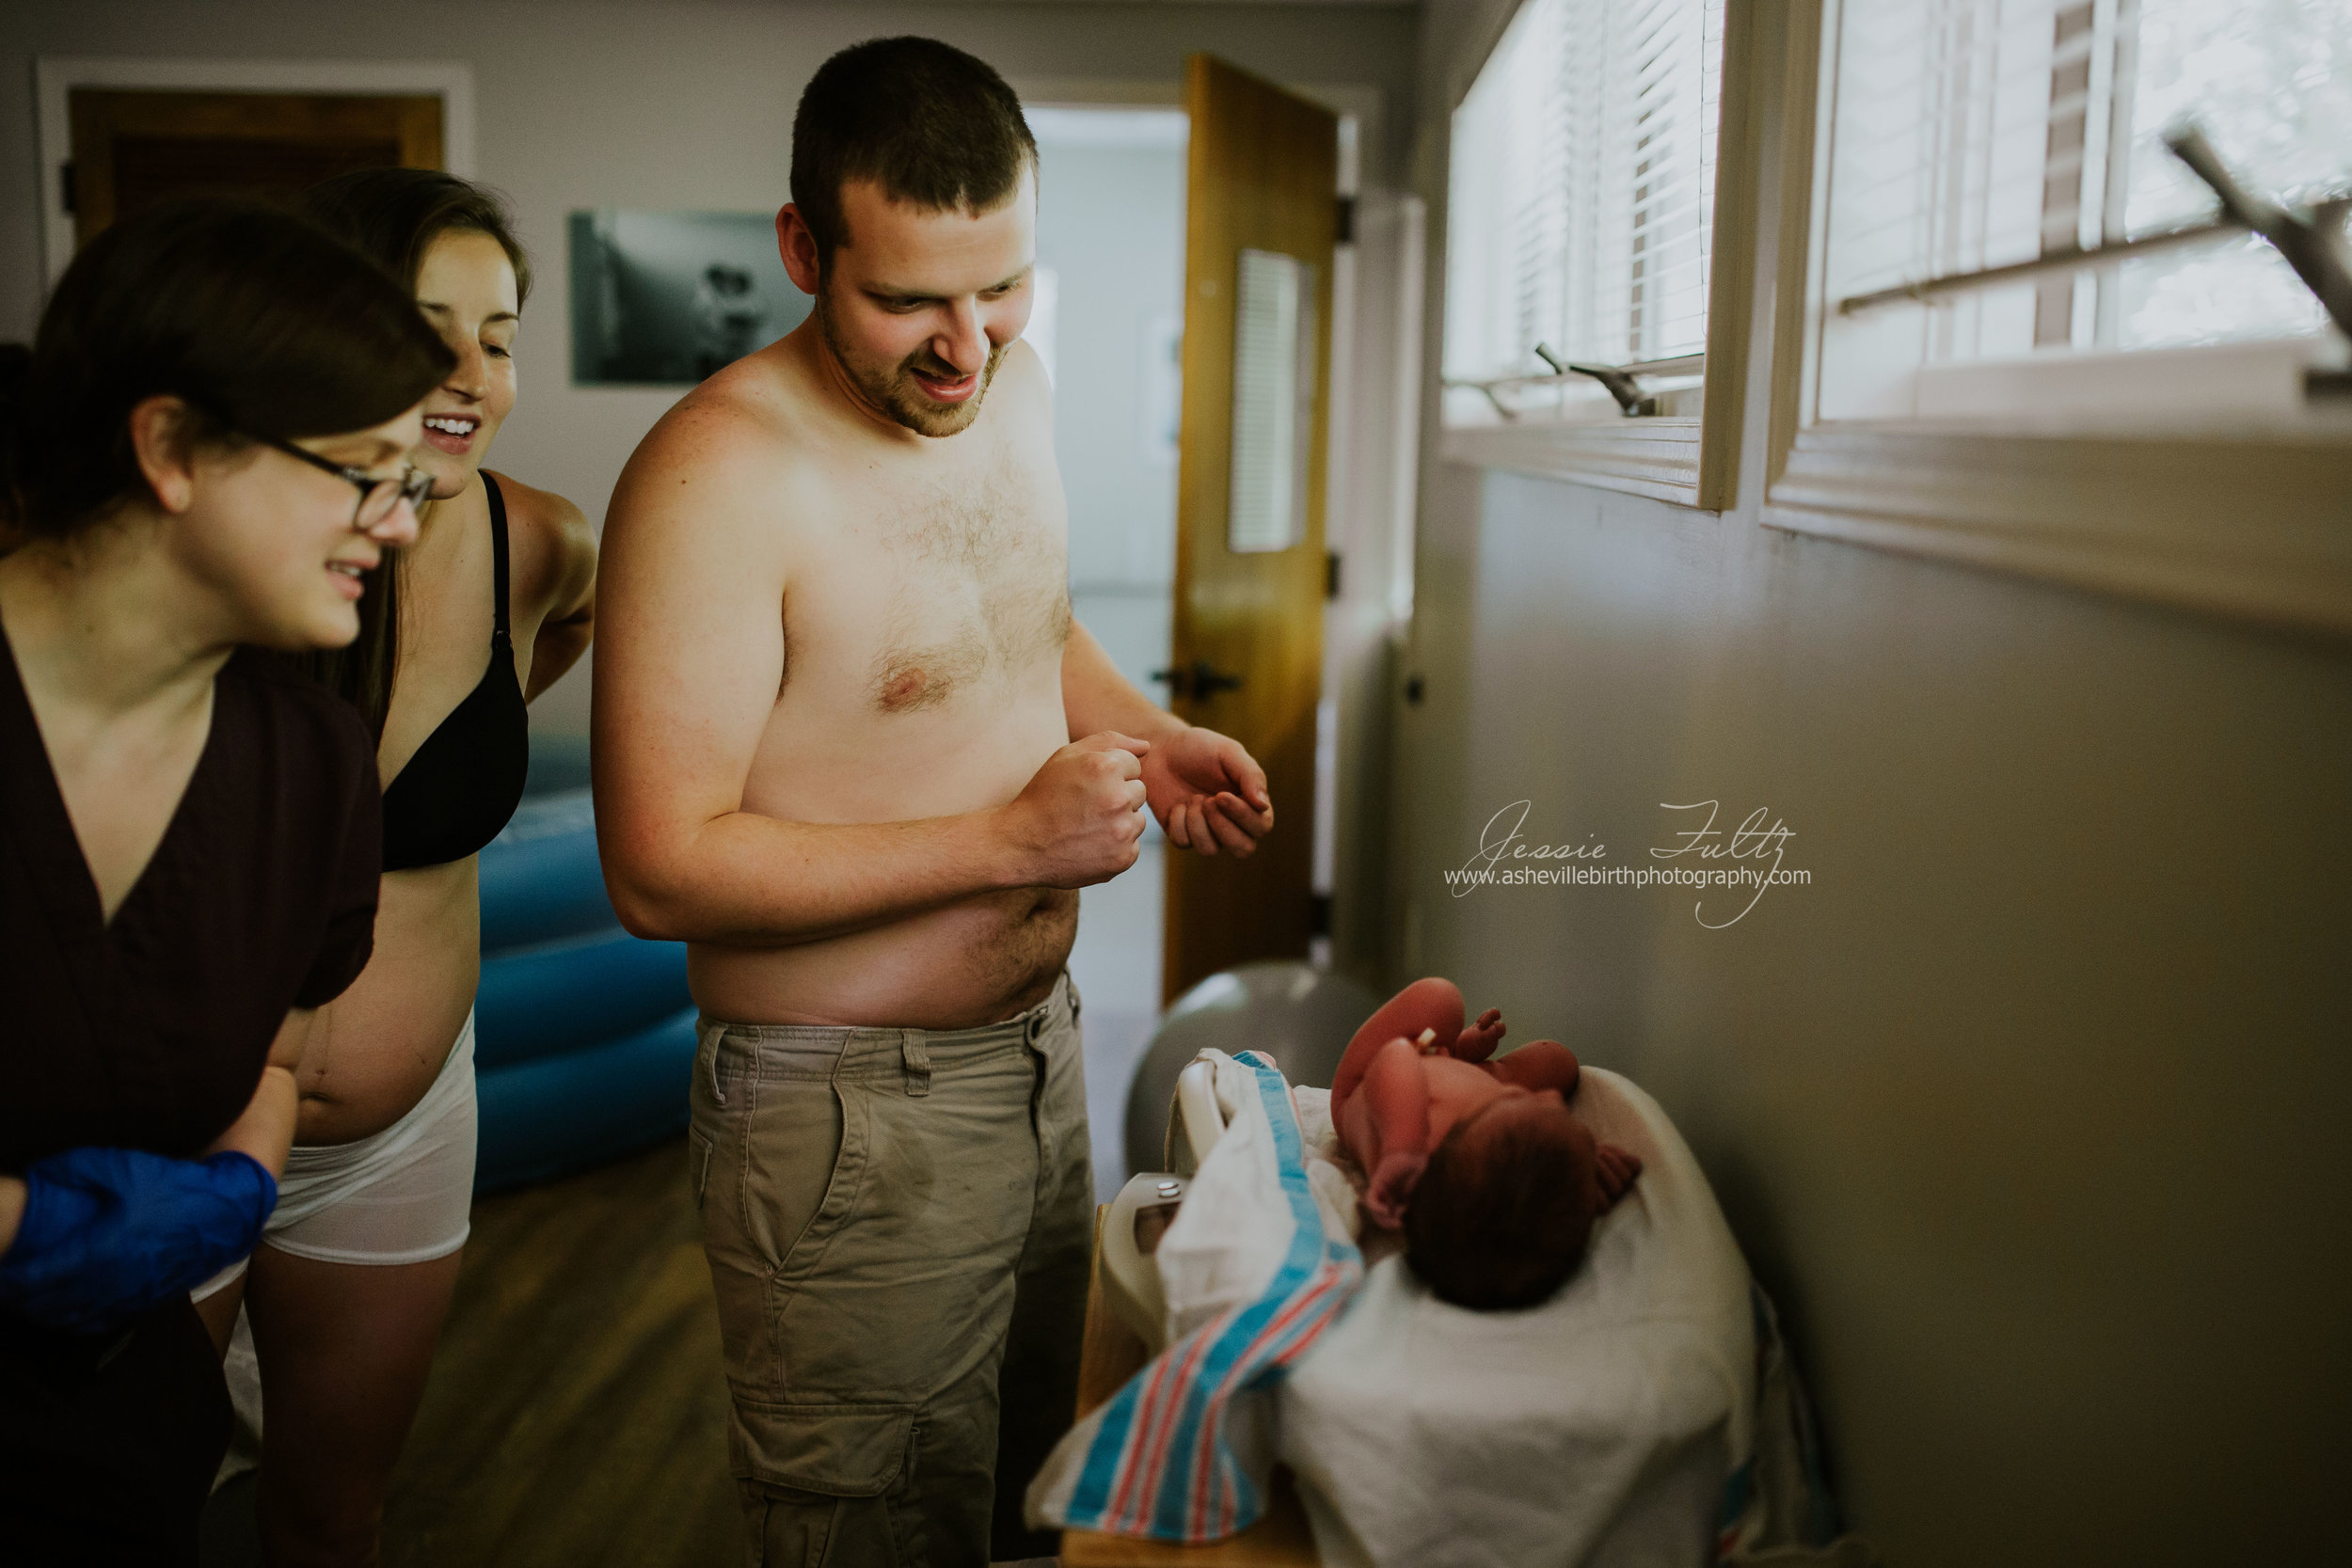 mom dad and midwife watch anxiously as newborn baby is being weighed